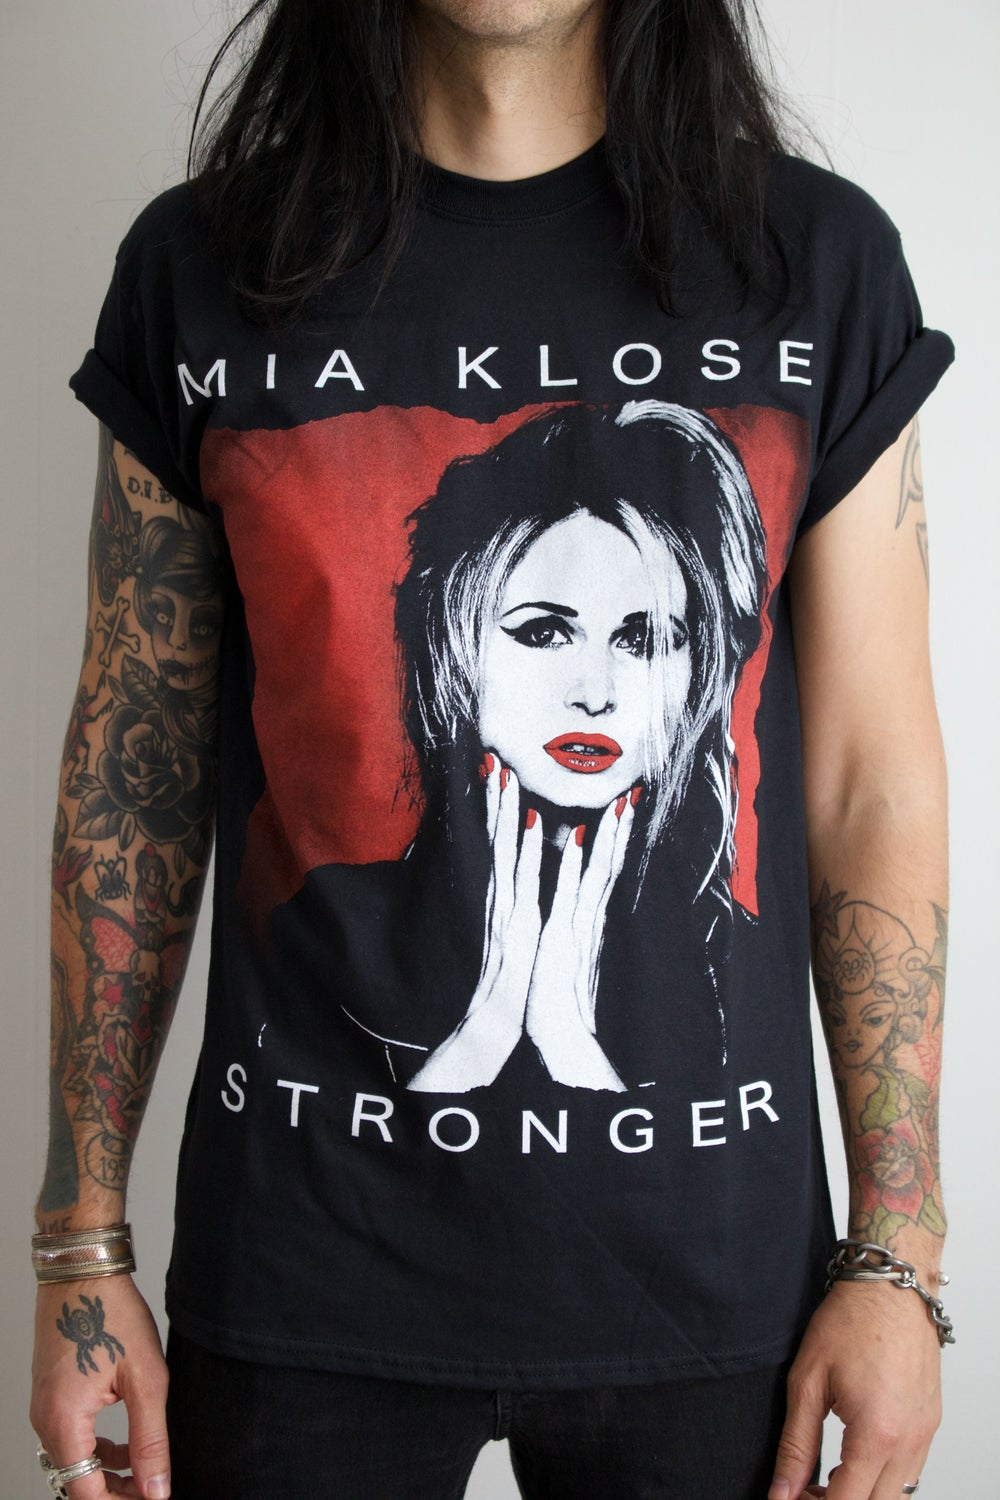 Image of Mia Klose Unisex T-Shirt - STRONGER - Black